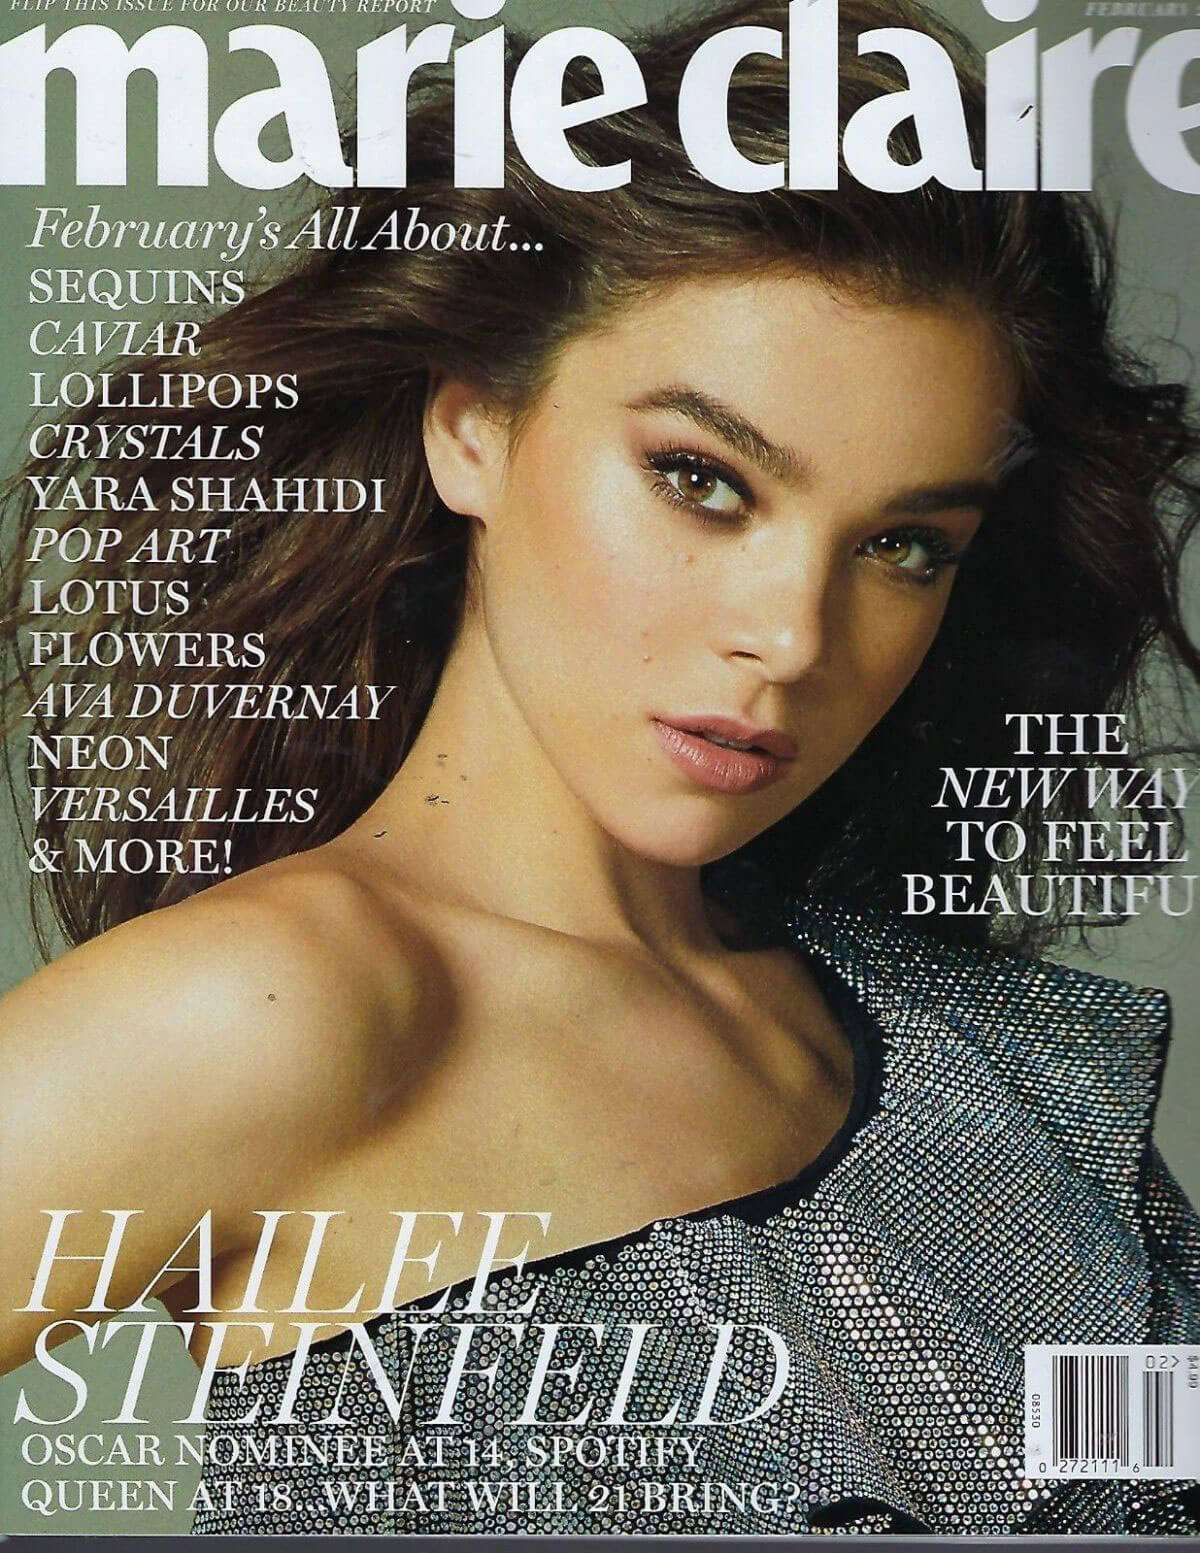 Hailee Steinfeld Stills in the Marie Claire Magazine, February 2018 Issue